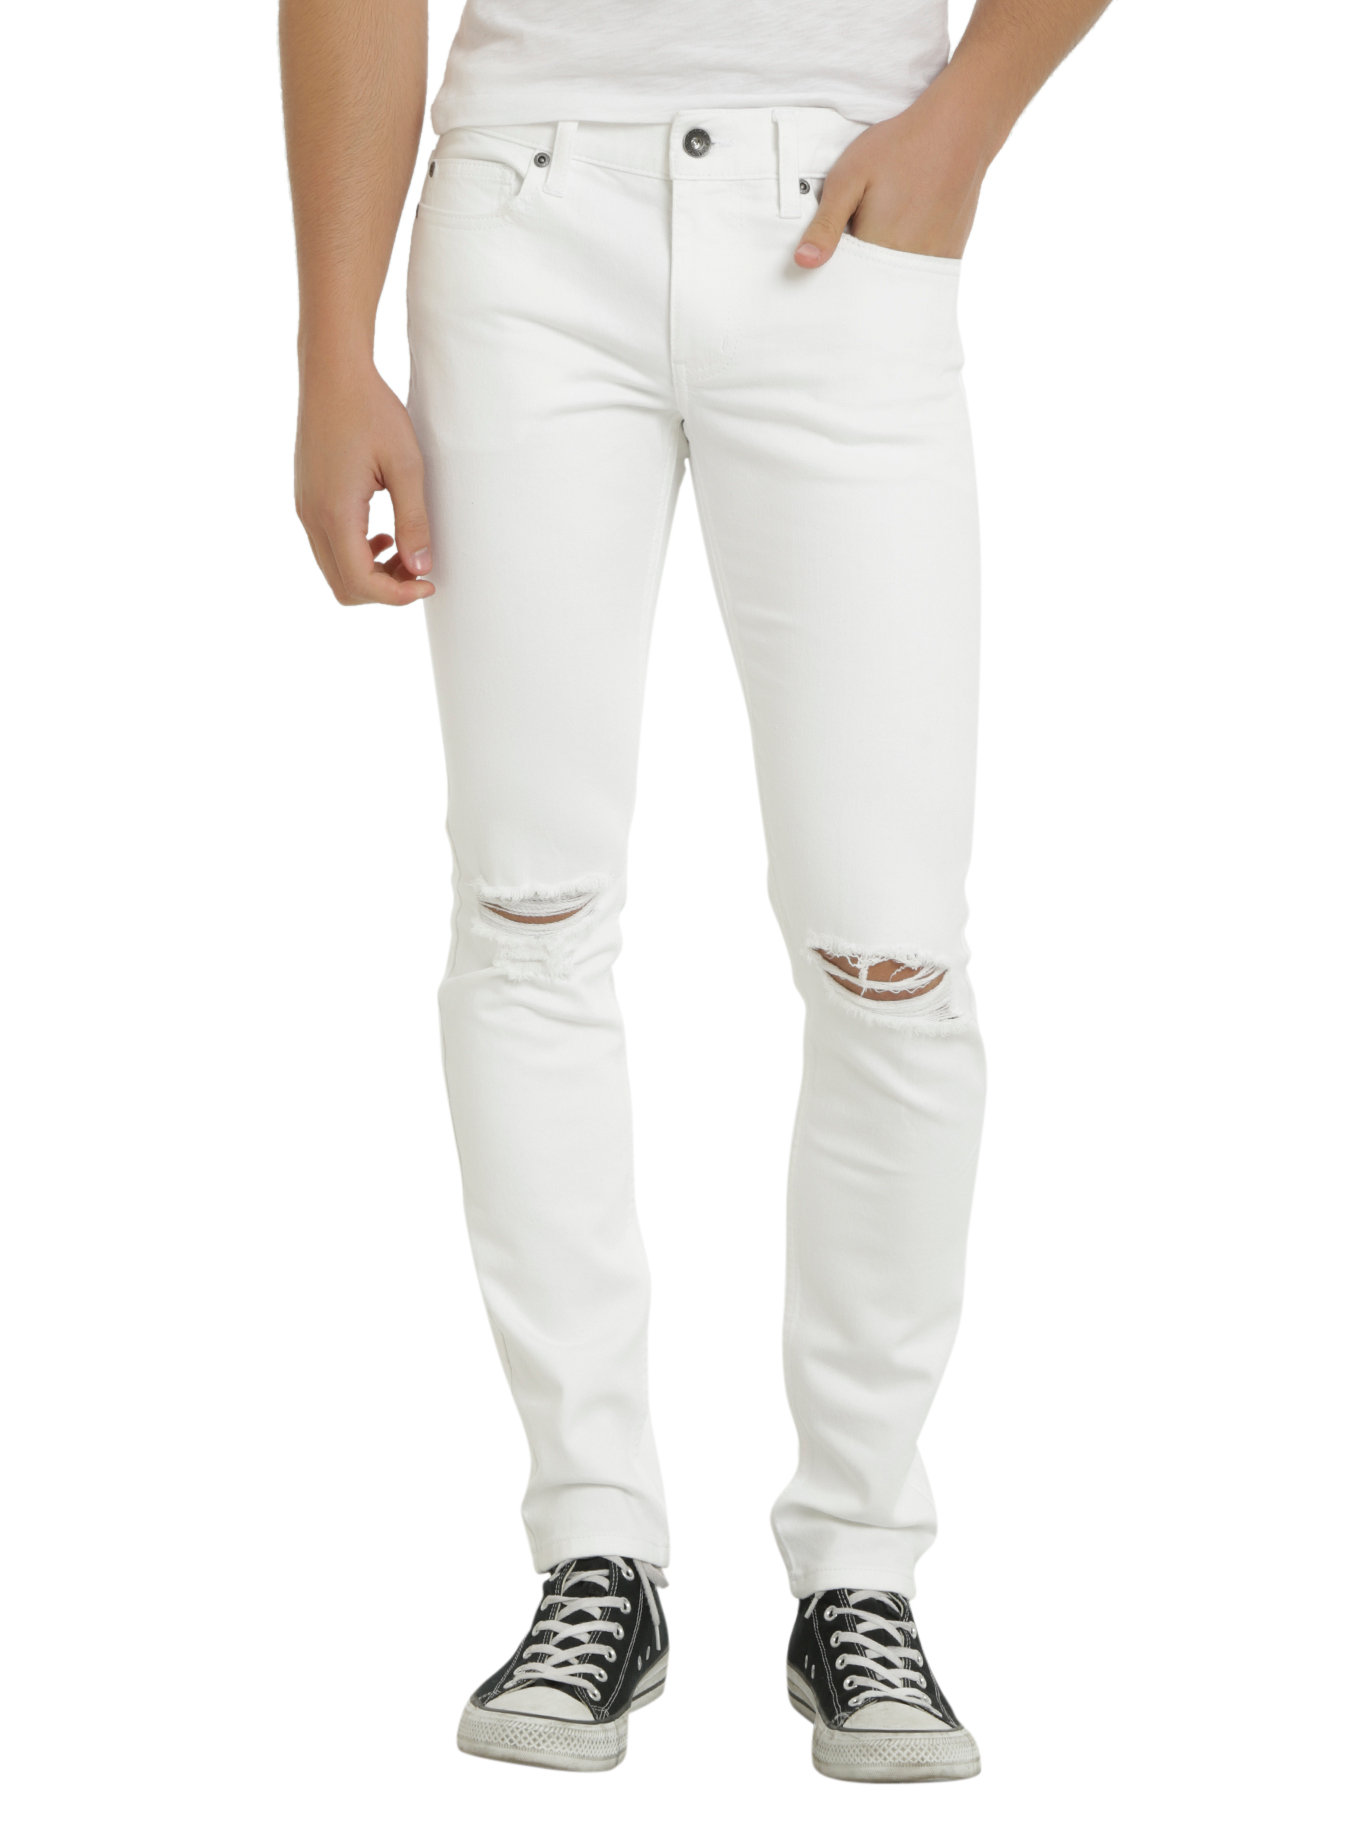 Shop for white mens jeans online at Target. Free shipping on purchases over $35 and save 5% every day with your Target REDcard. Men's Big & Tall Slim Fit Jeans - Goodfellow & Co™ White Women's Plus Size Skinny Jeans - Universal Thread™ White.